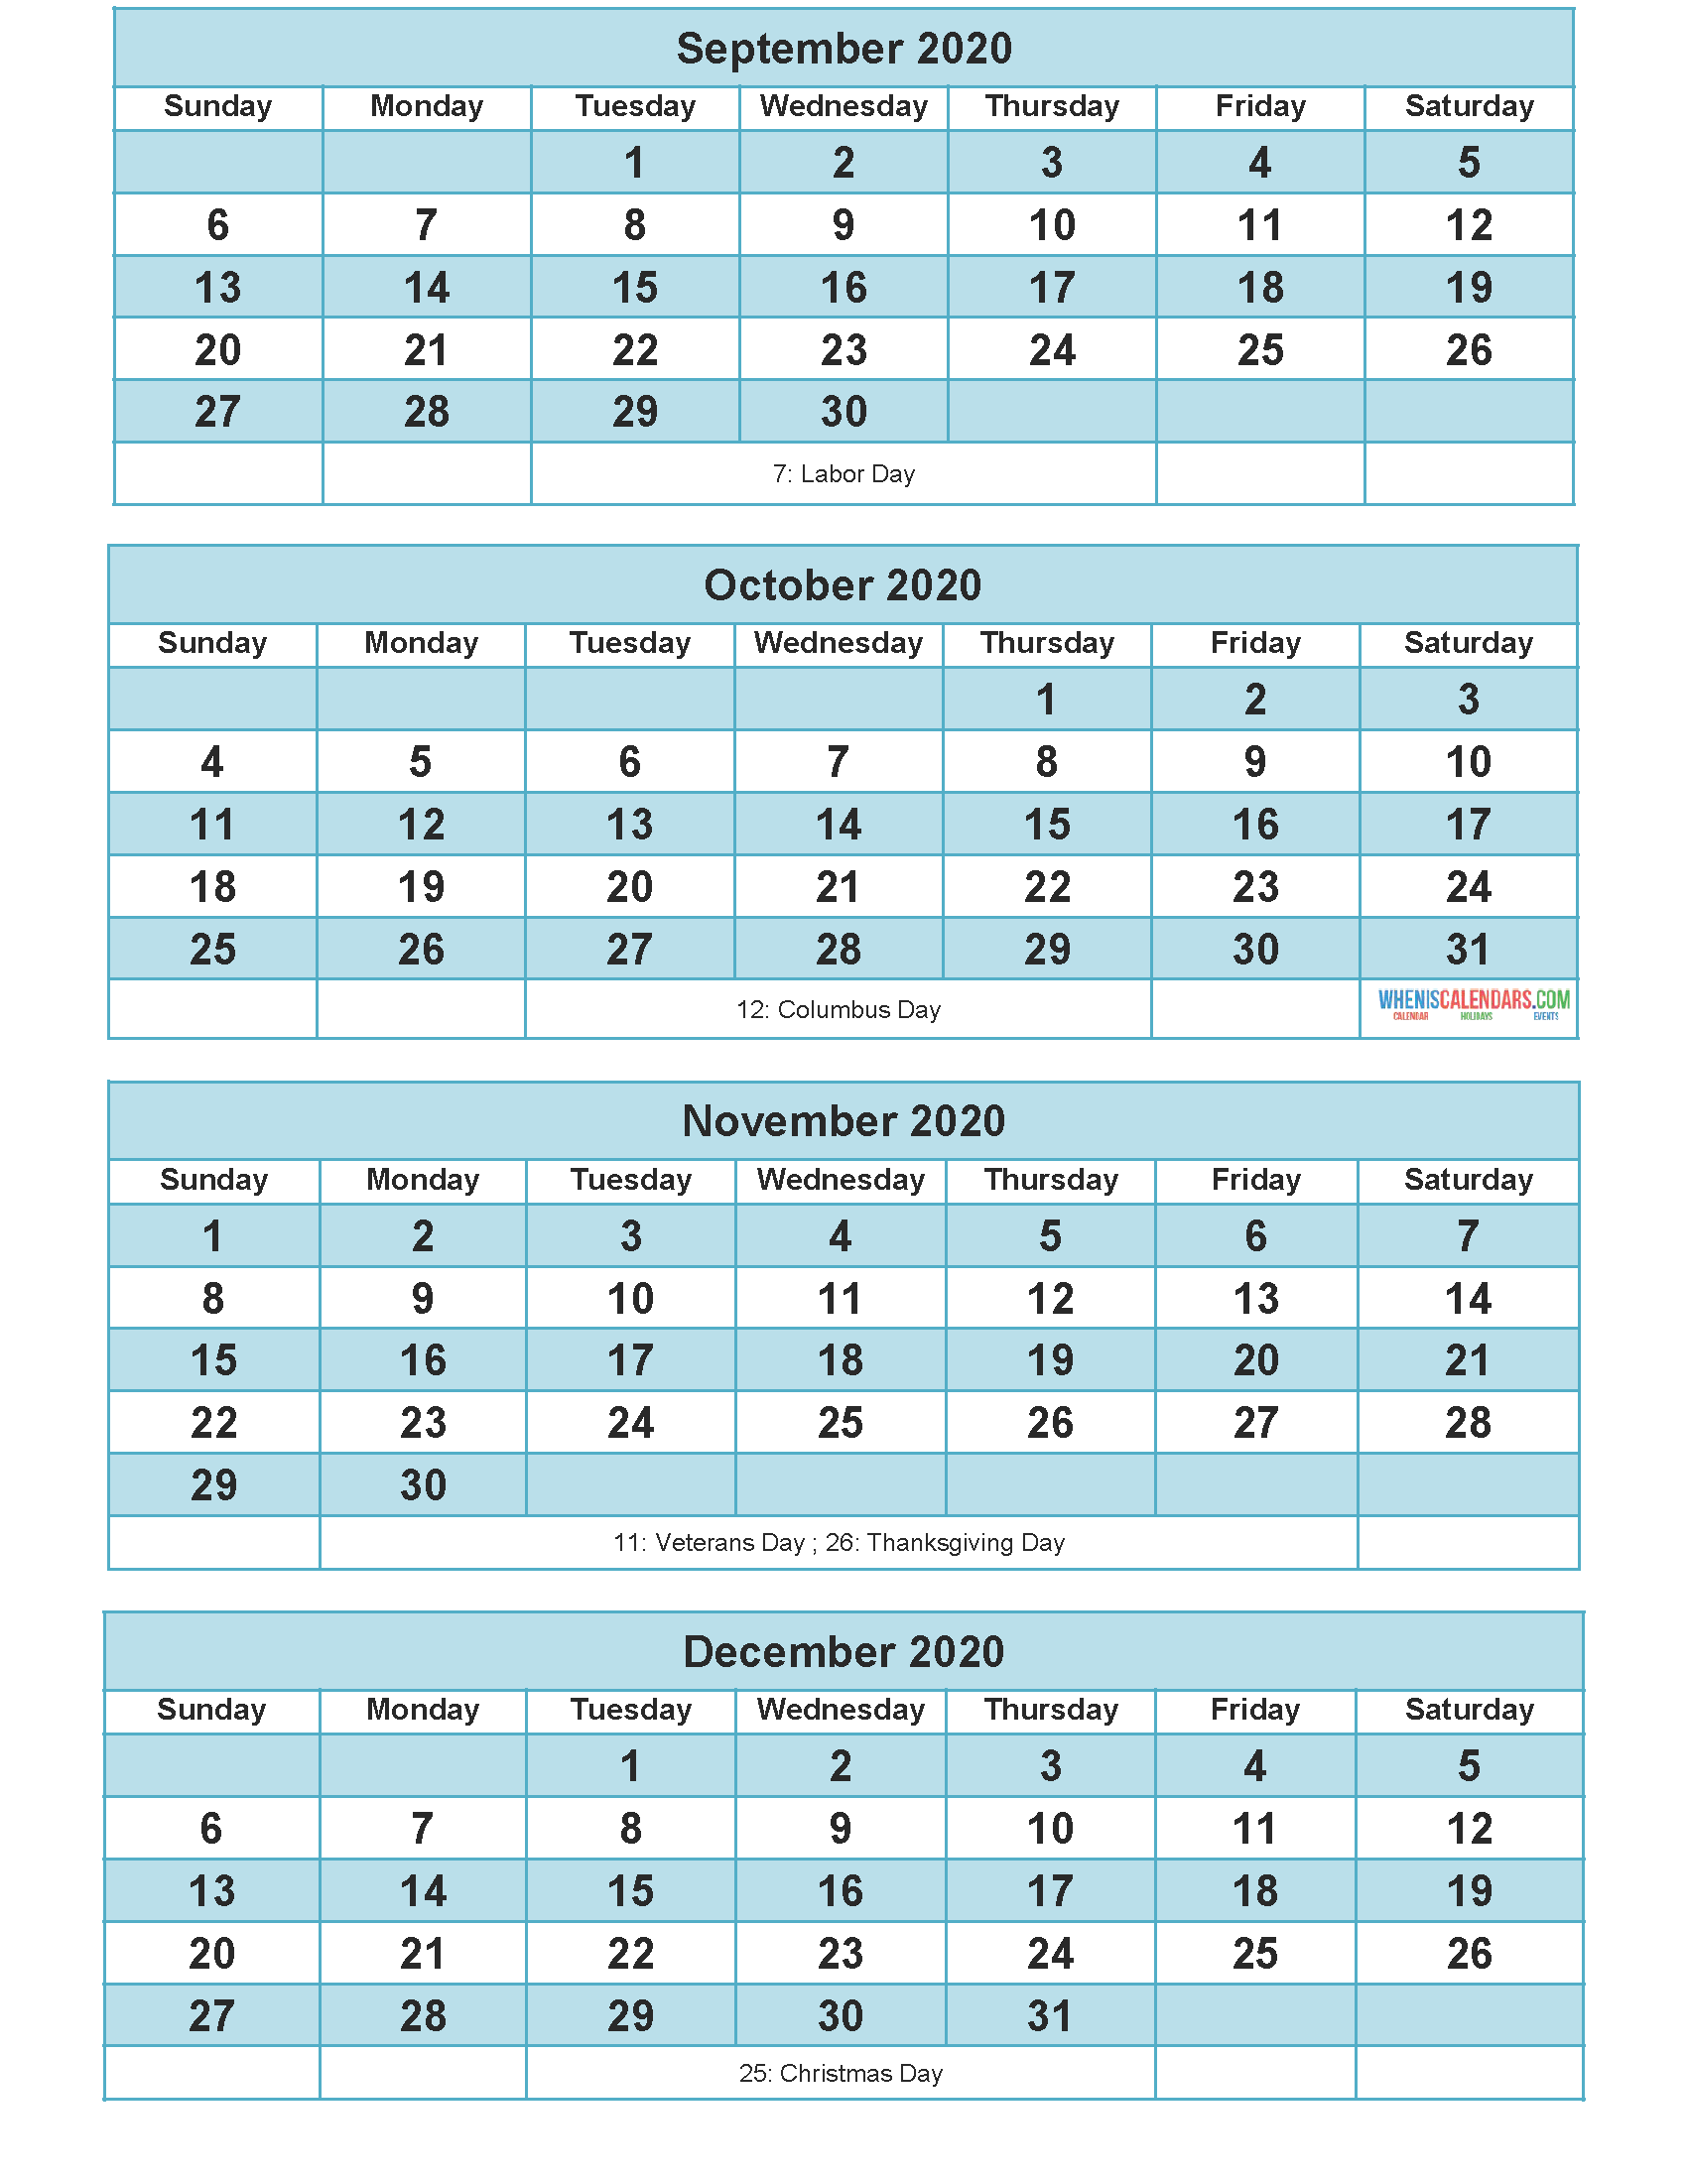 Printable Calendar 2020 September October November December Word, PDF, Image